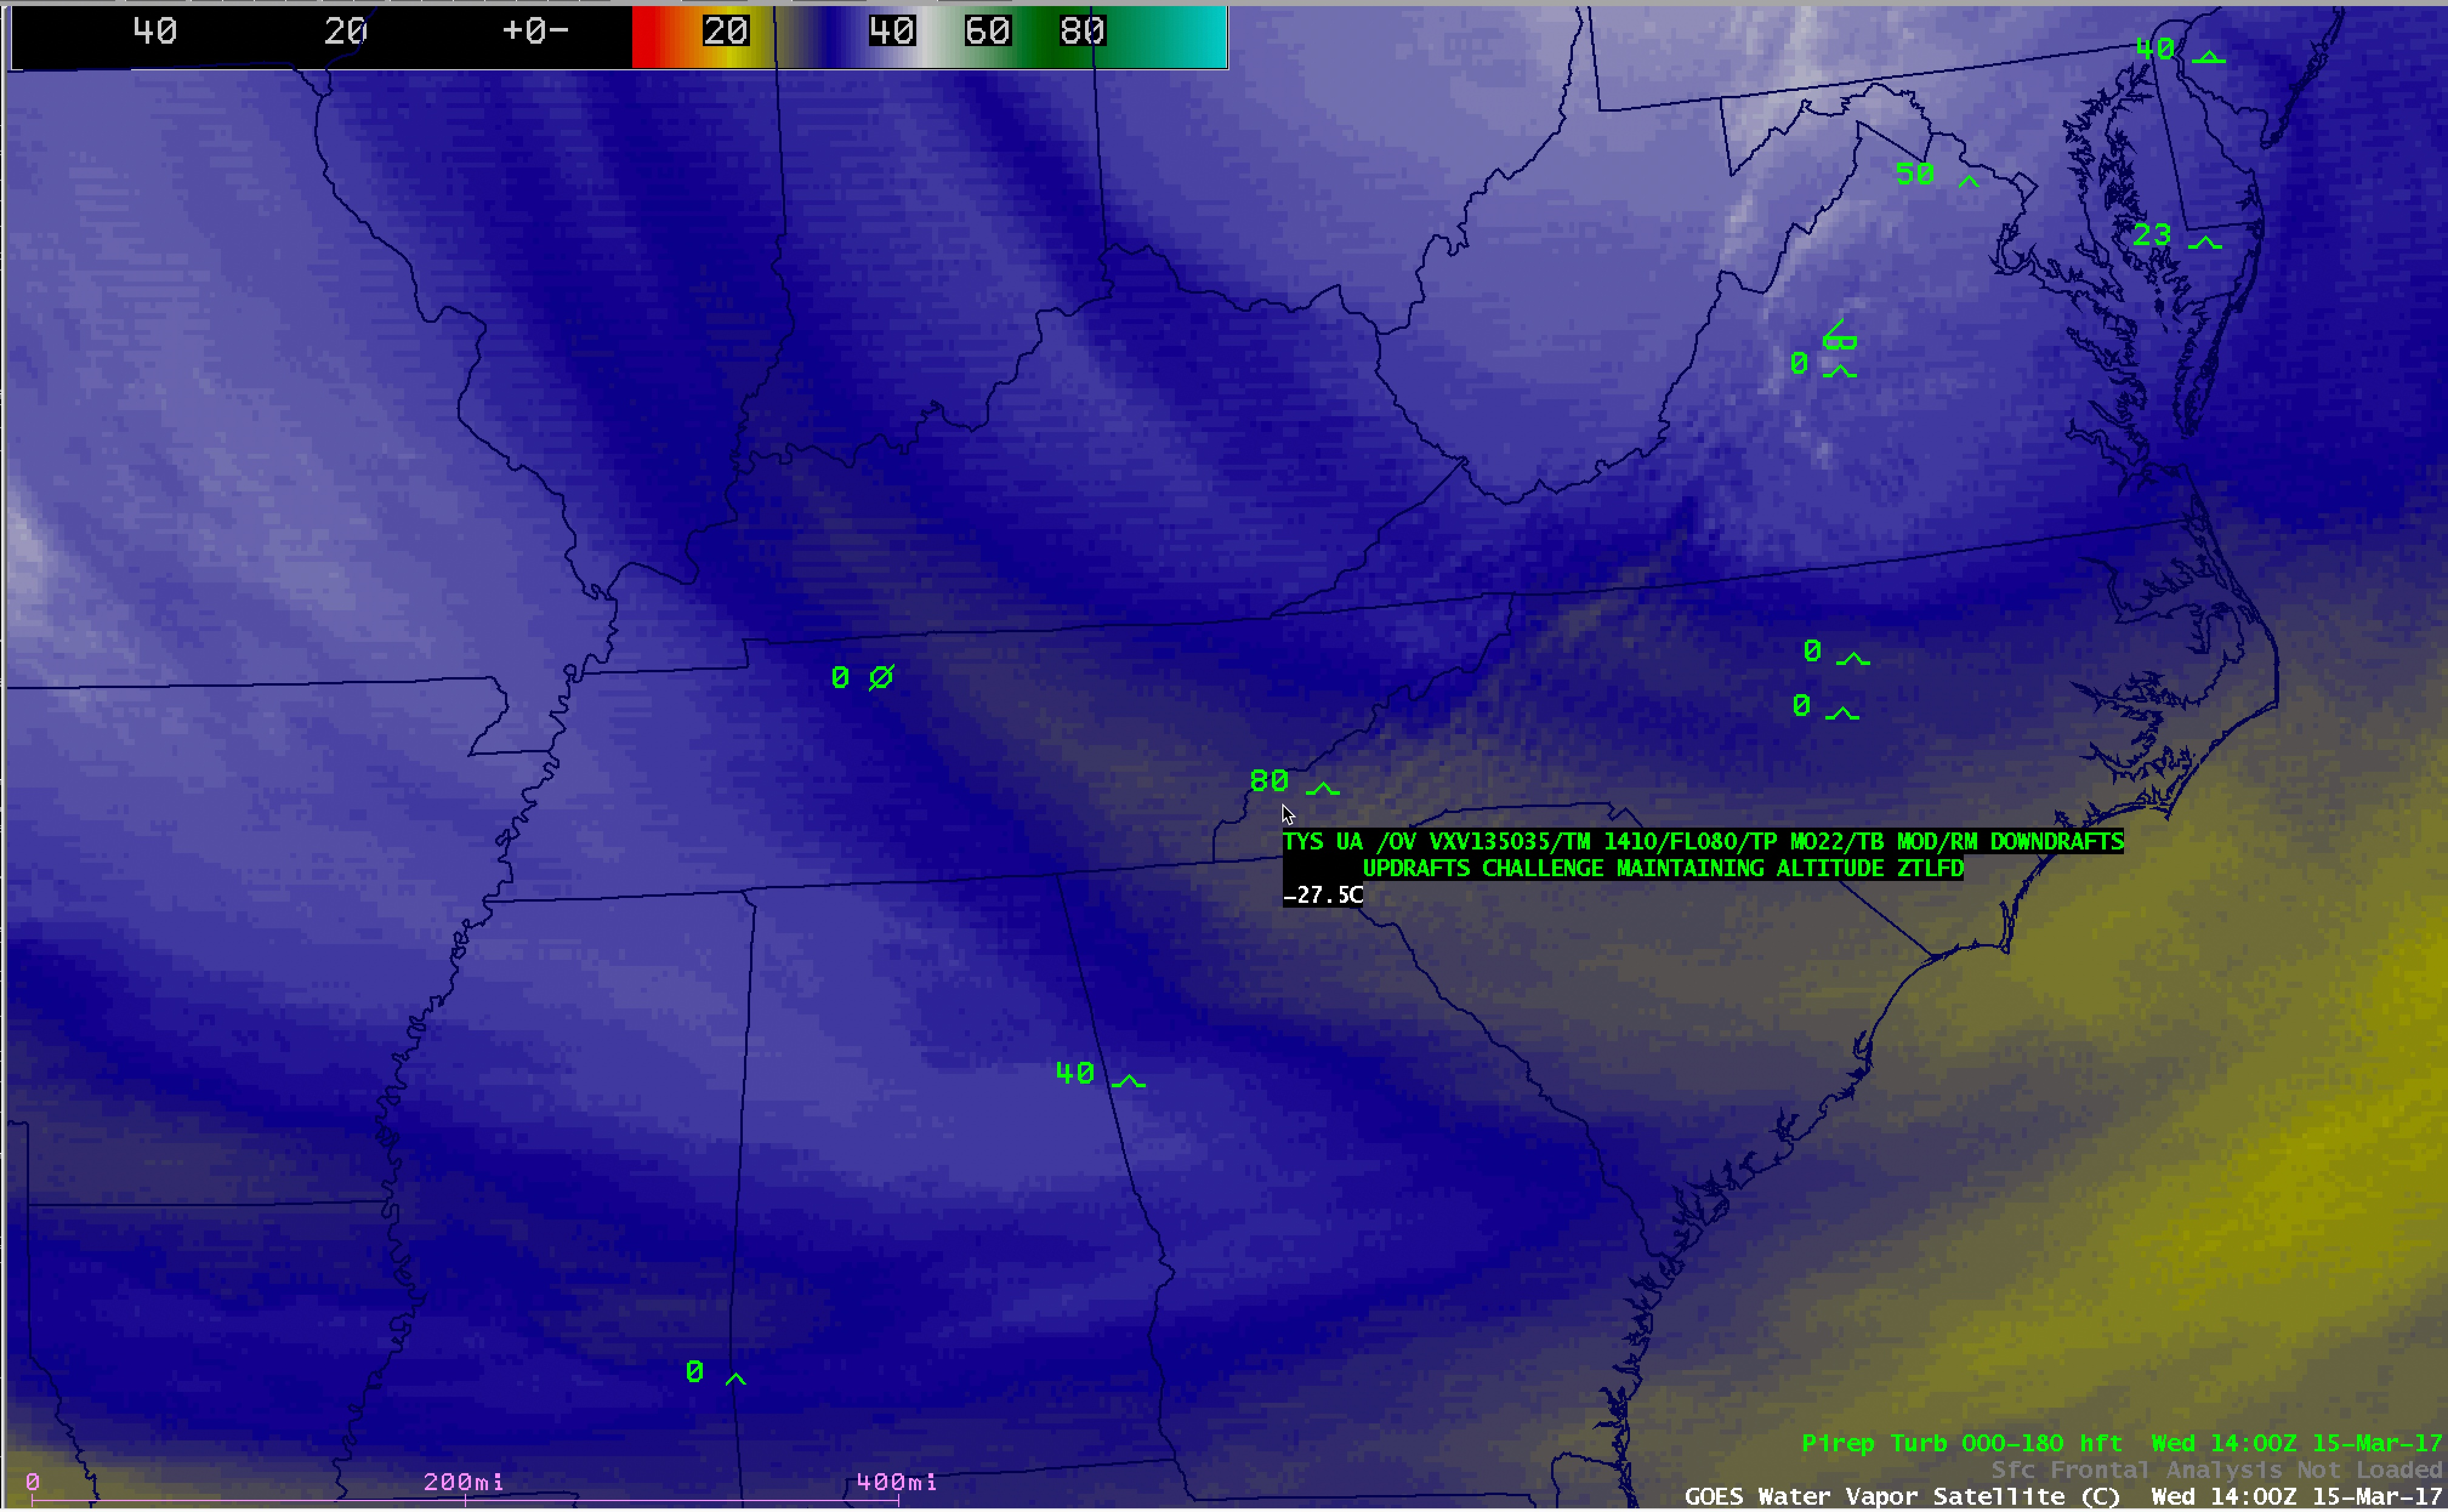 GOES-13 Water Vapor (6.5 µm) image, with pilot report of turbulence [click to enlarge]